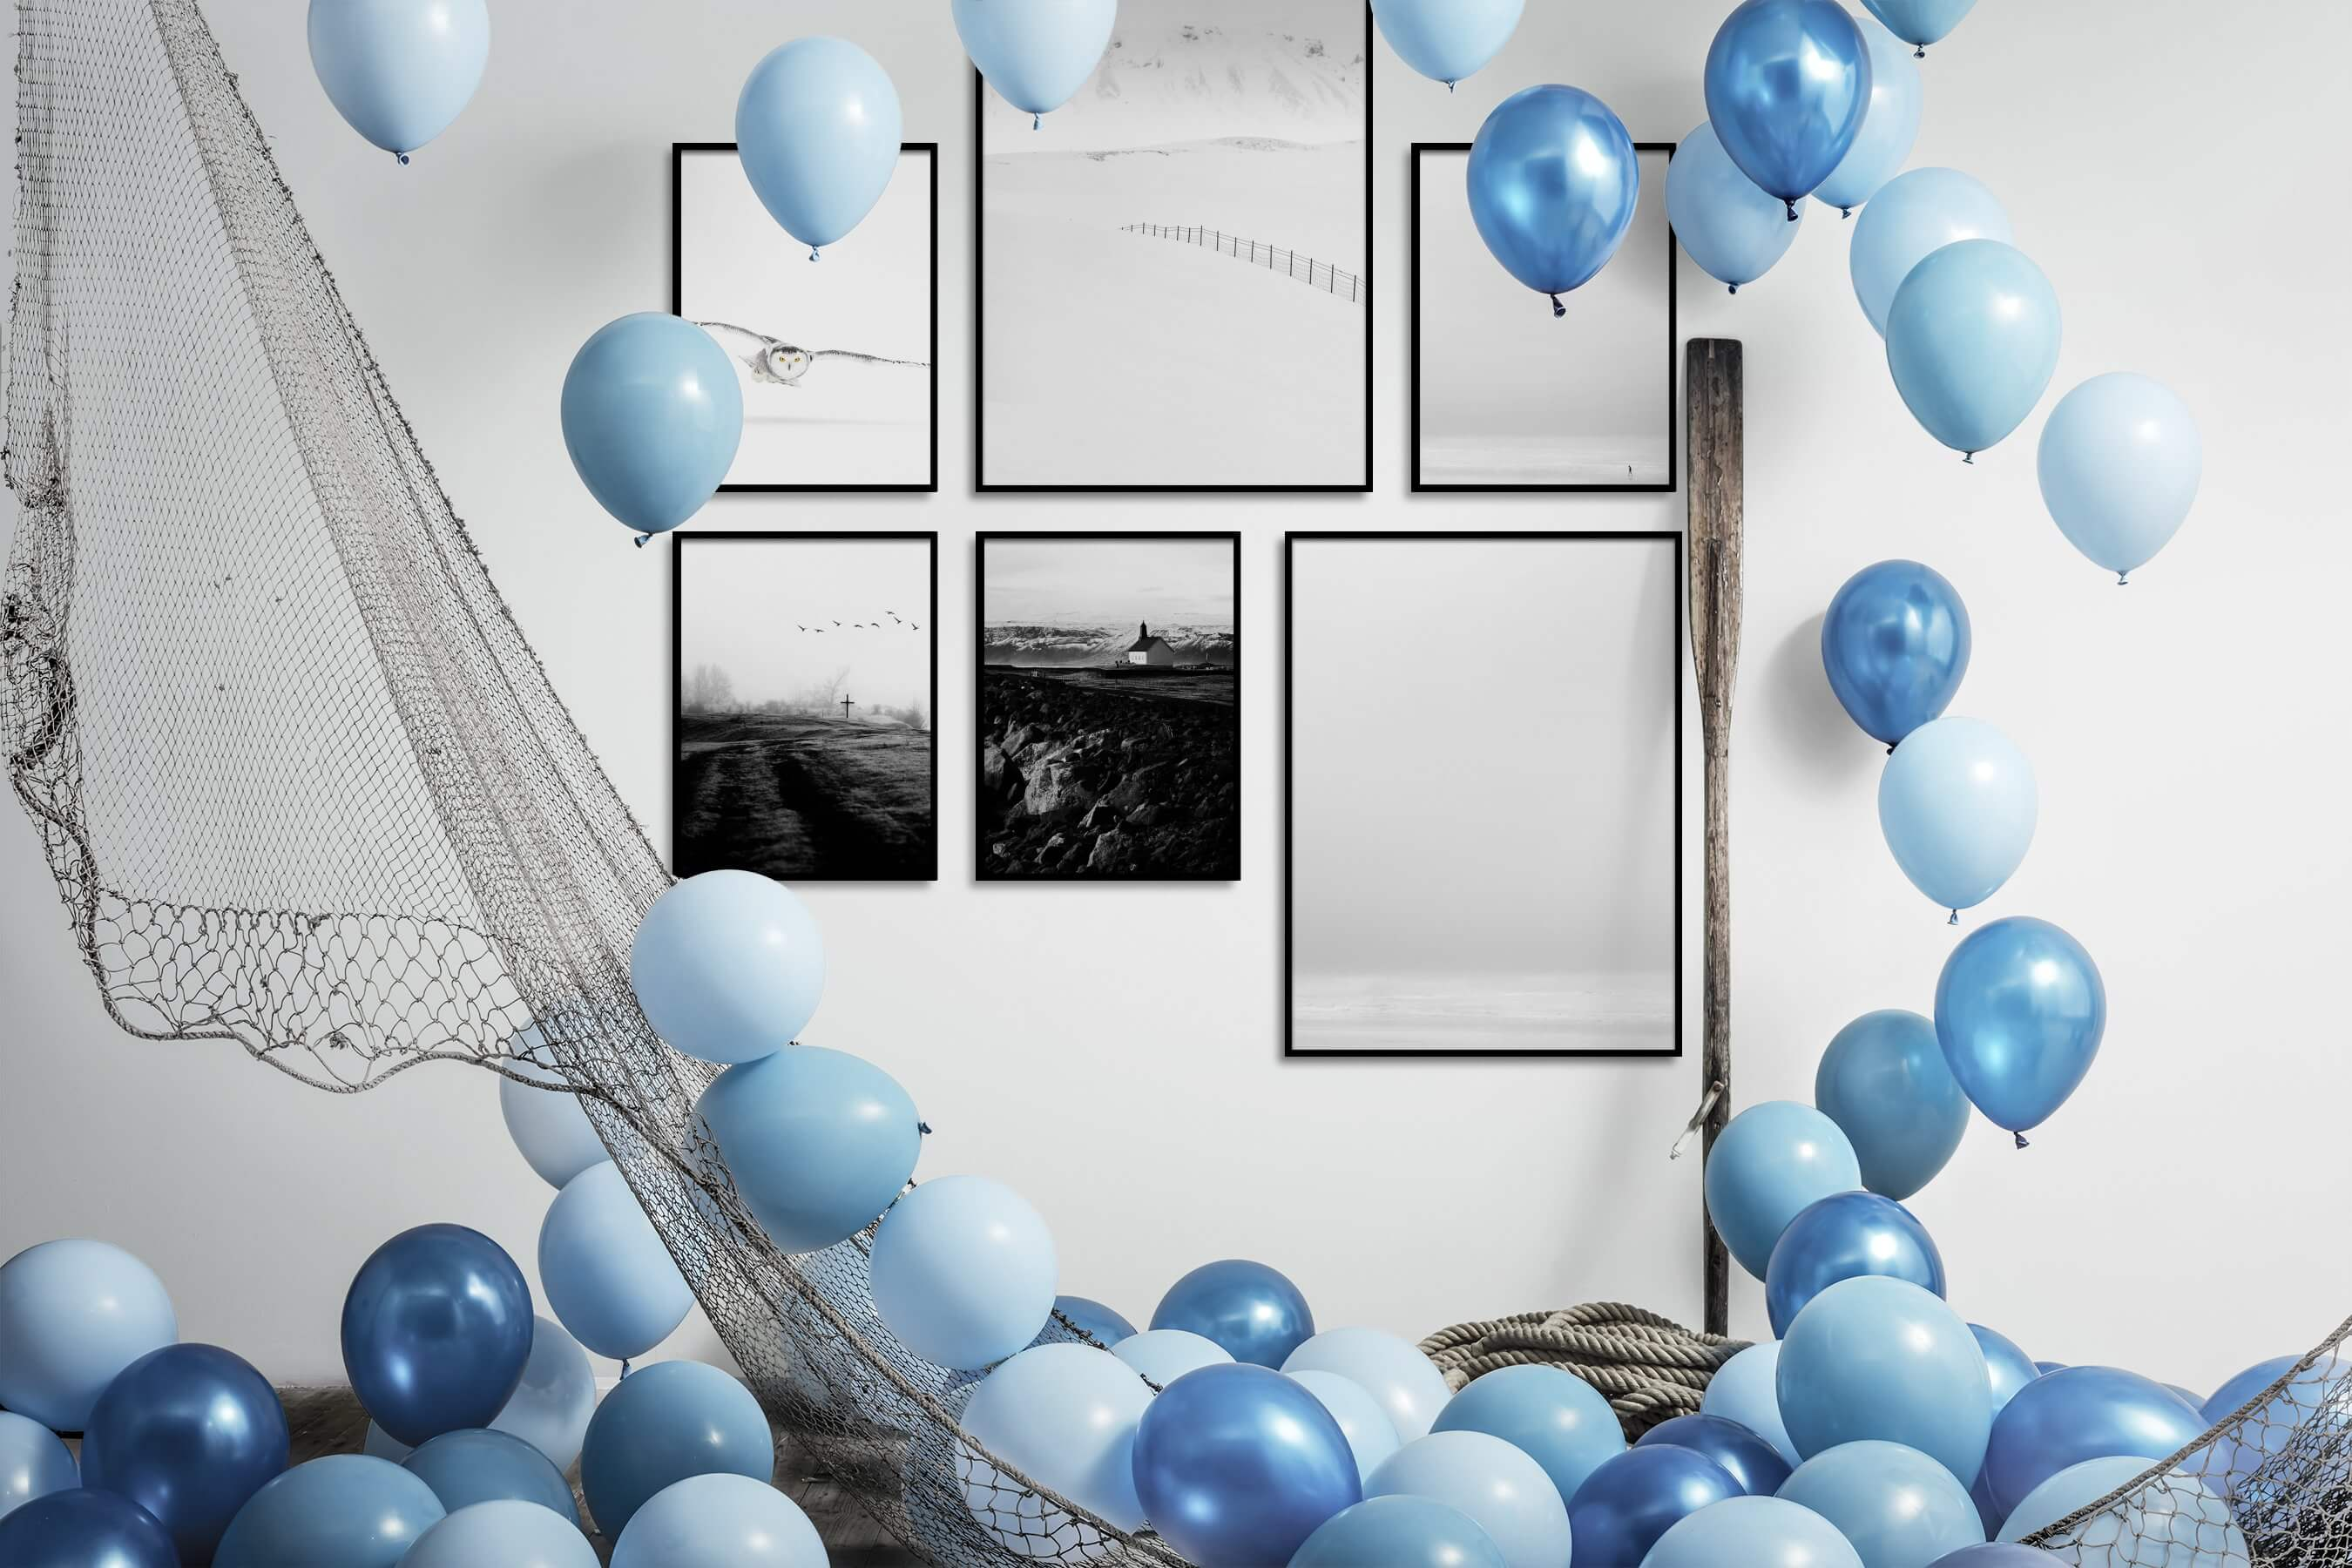 Gallery wall idea with six framed pictures arranged on a wall depicting Bright Tones, For the Minimalist, Animals, Black & White, Country Life, Beach & Water, and Mindfulness